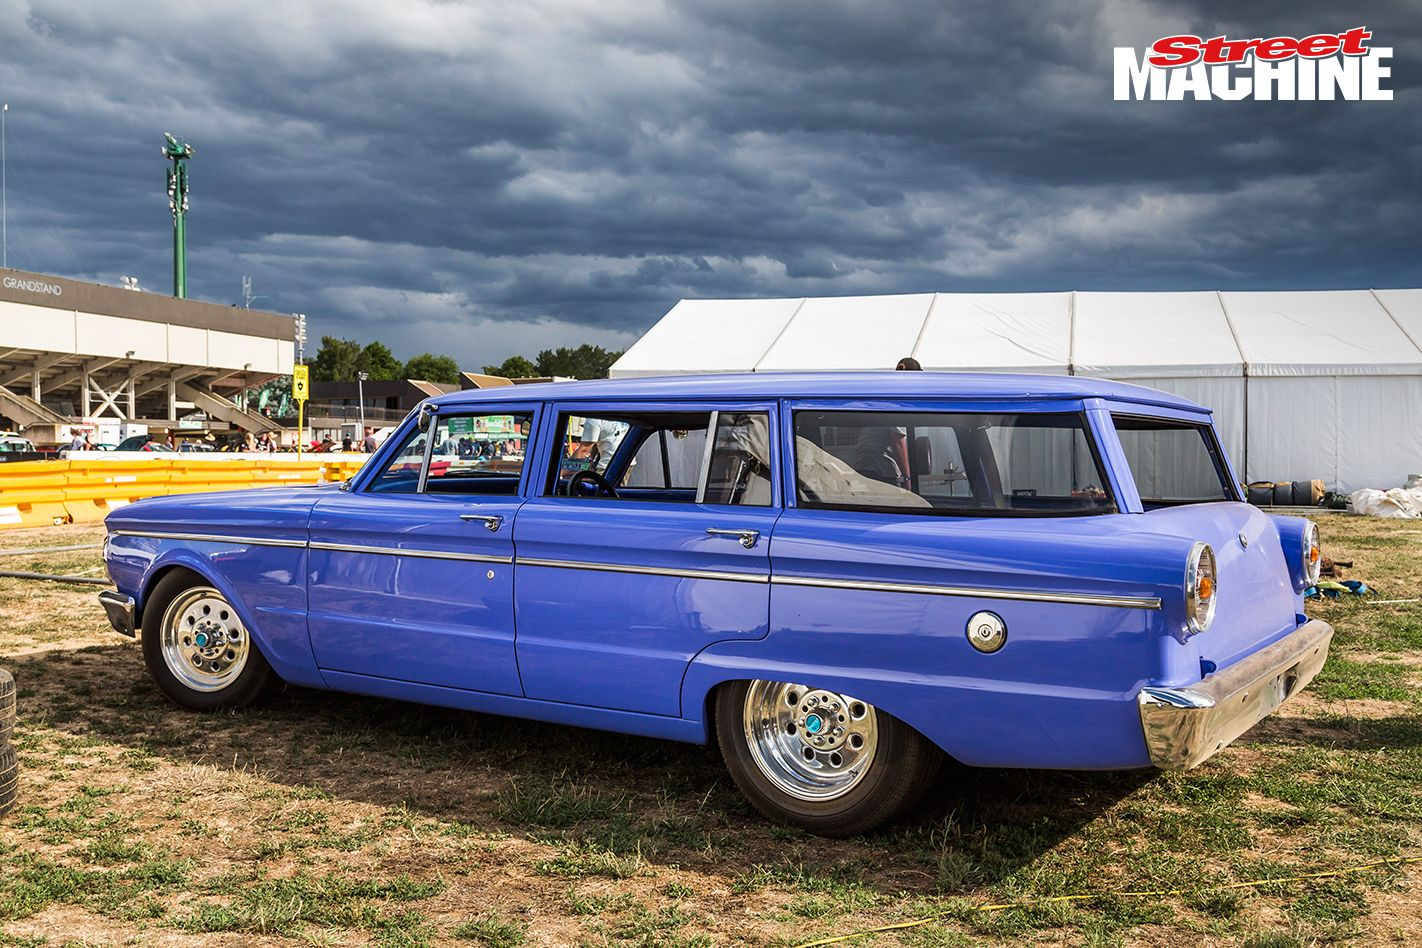 Chopped 351 Windsor Powered Xp Ford Wagon At Summernats Wagon Ford Hearse